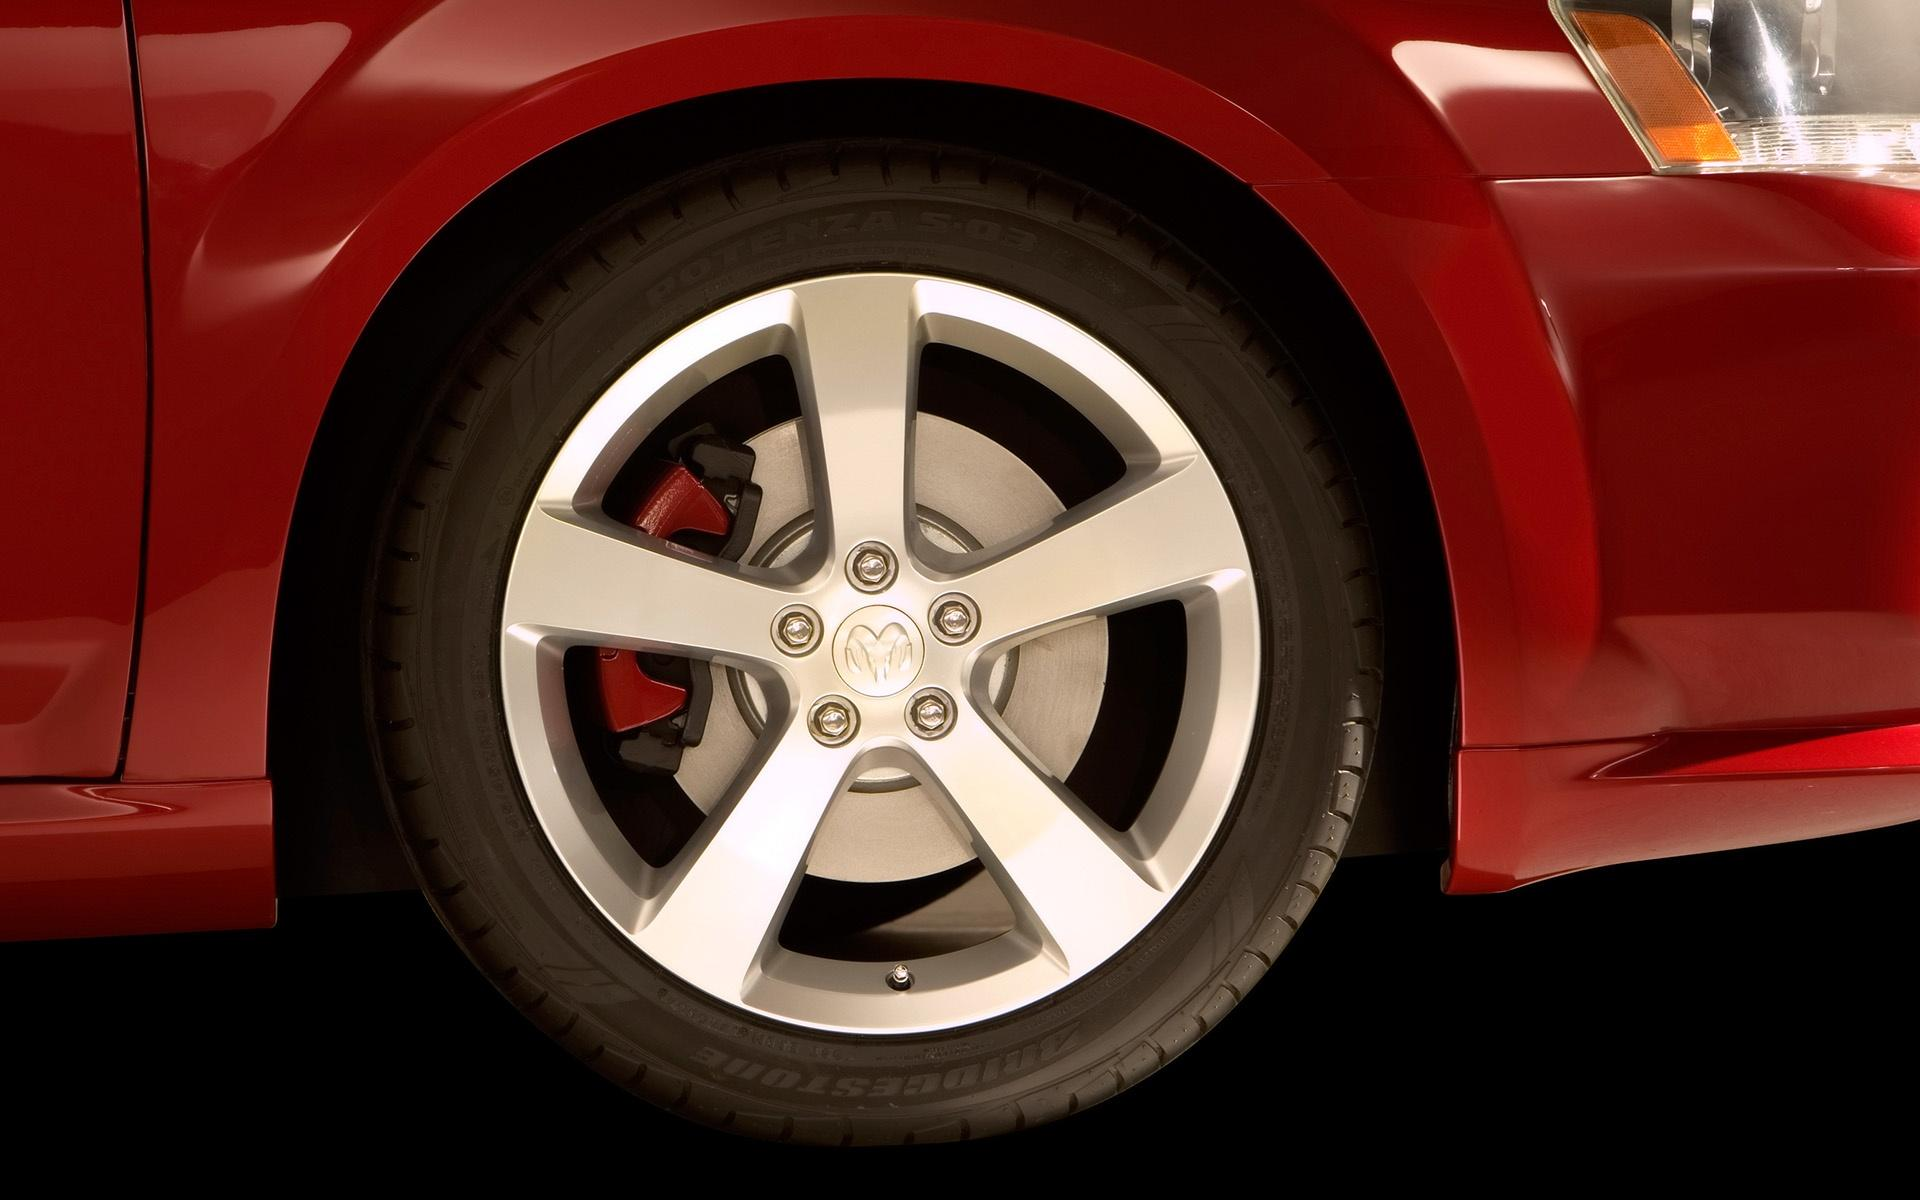 2006 Dodge Avenger Concept Wheel 1920x1200